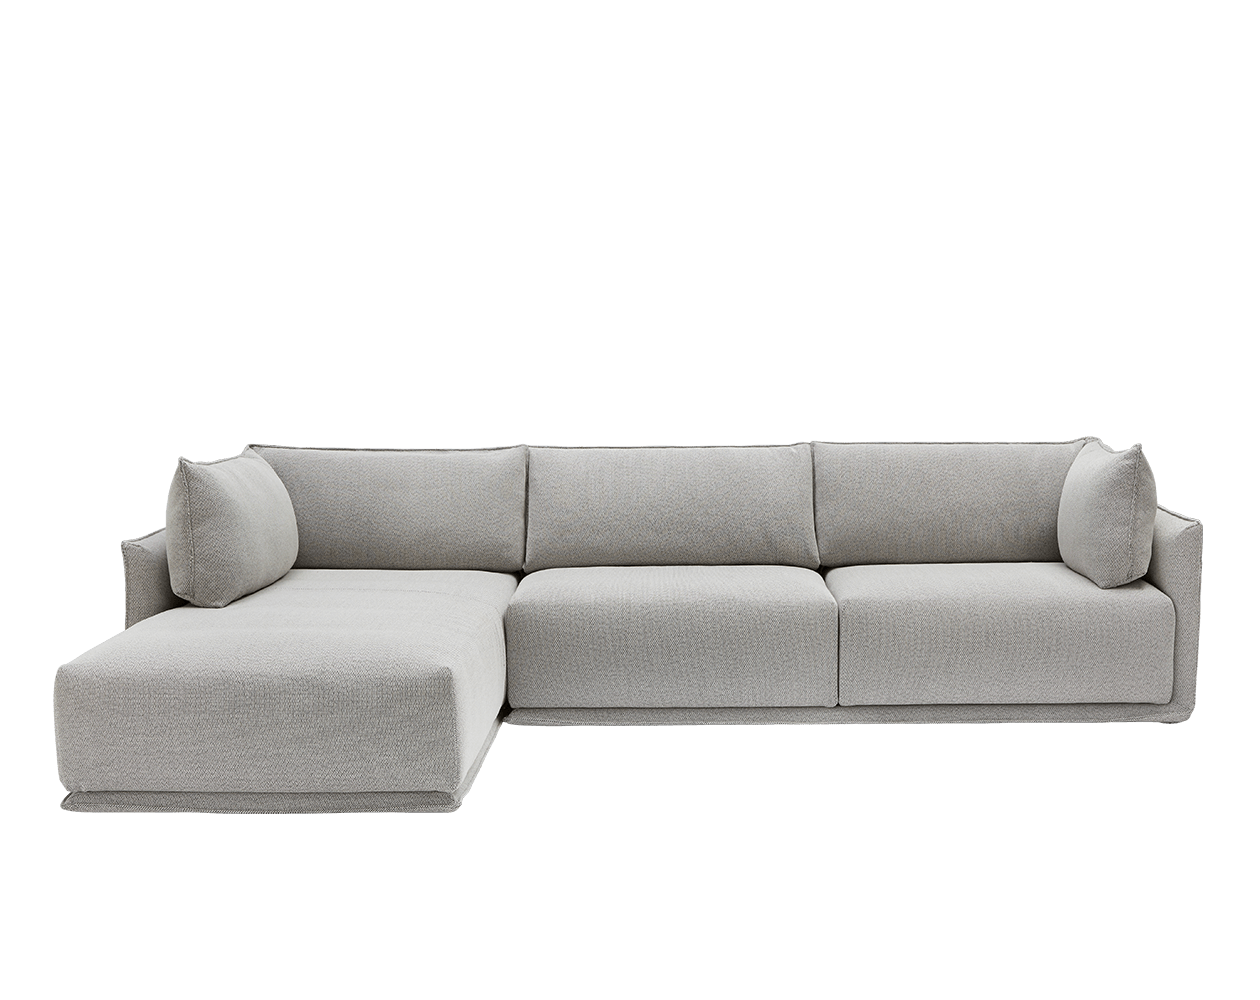 Sofa Module Max Sofa Sp01 Design